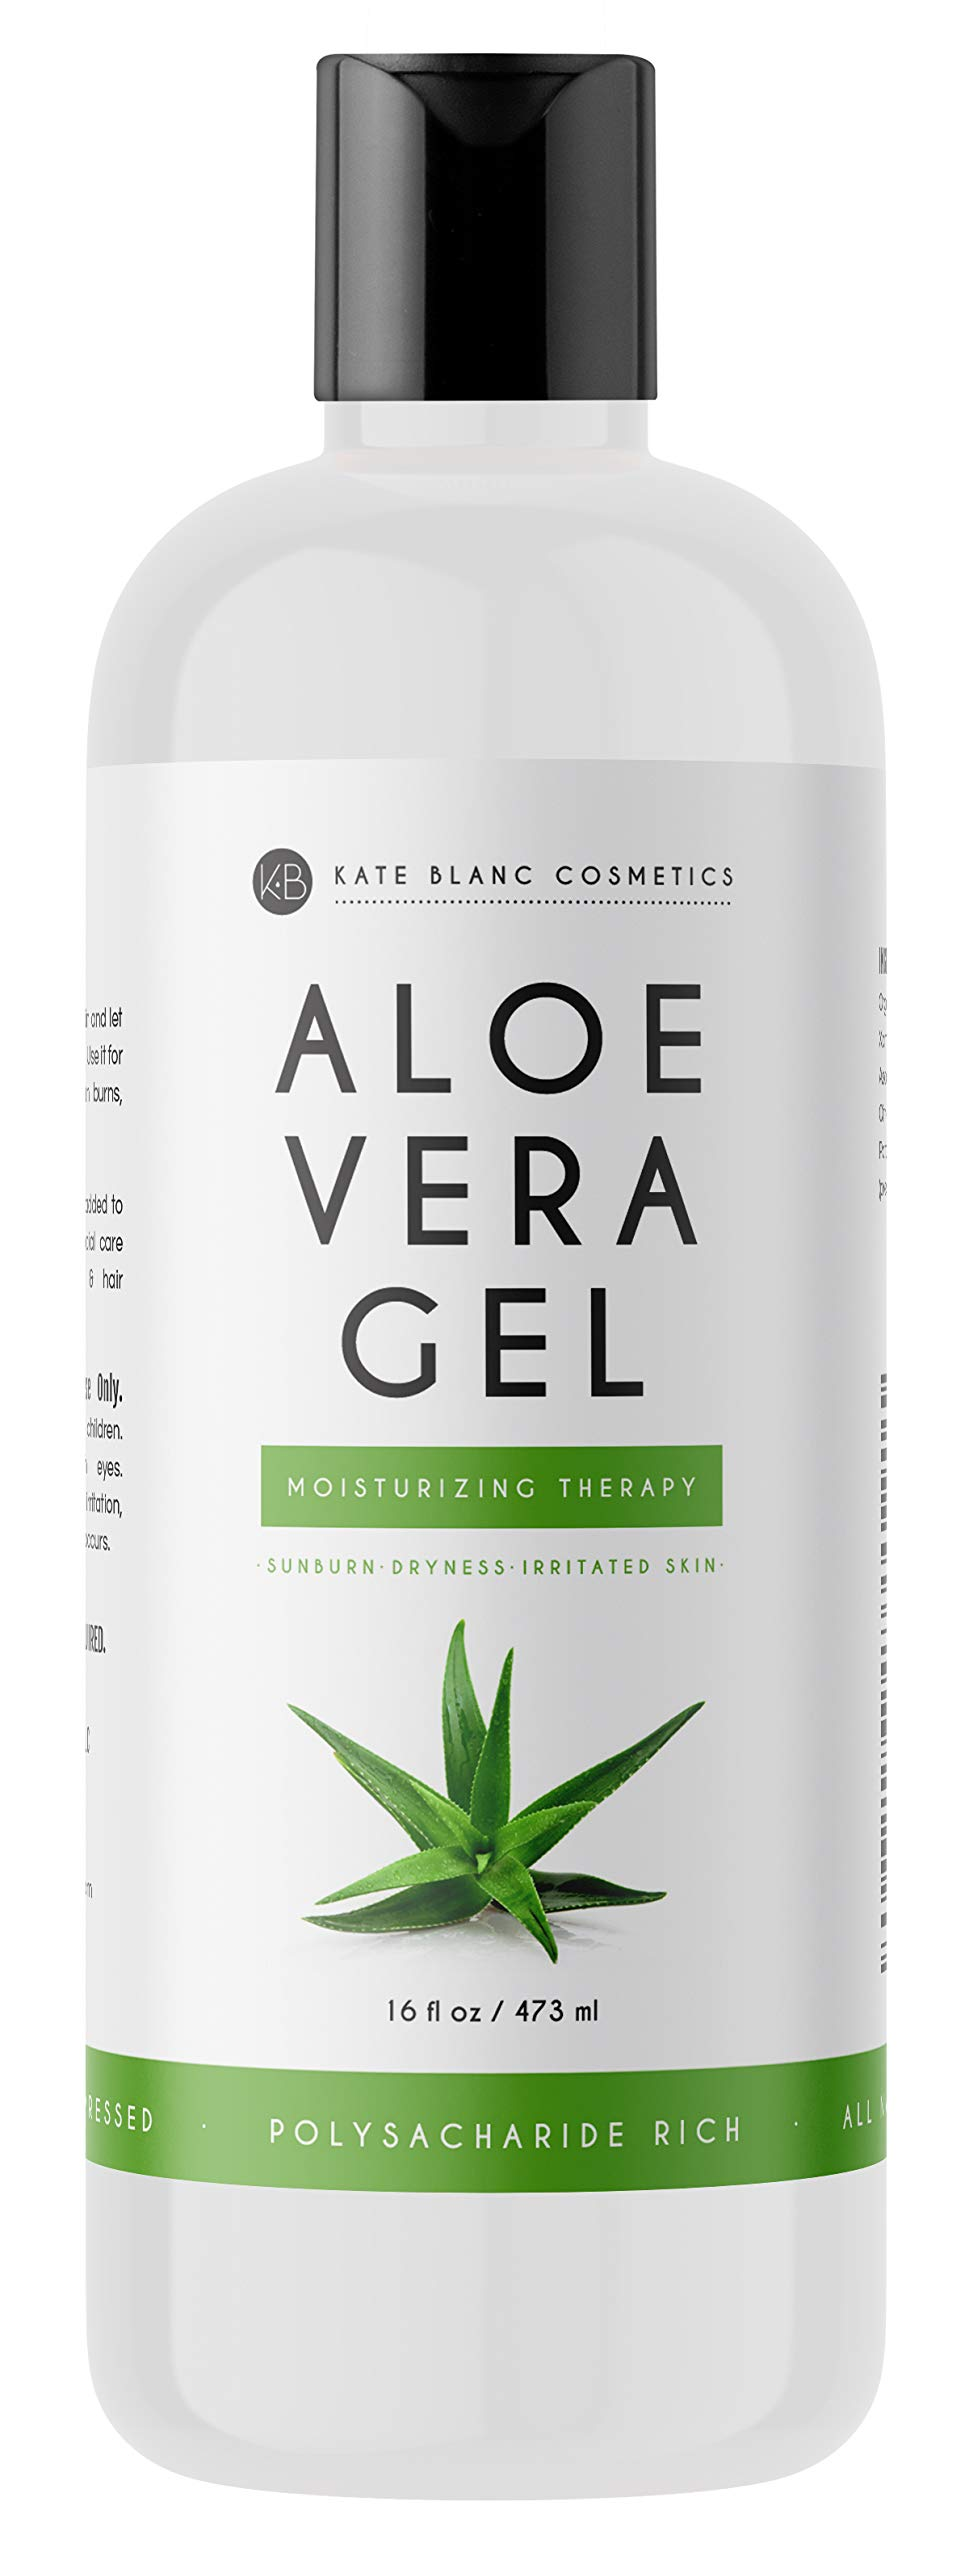 Aloe Vera Gel from Freshly Cut Organic Pure Aloe Plant by Kate Blanc. Great for Hair and Face. Relieves Sunburn, Dry Scalp, Irritated Skin with No Sticky Residue.